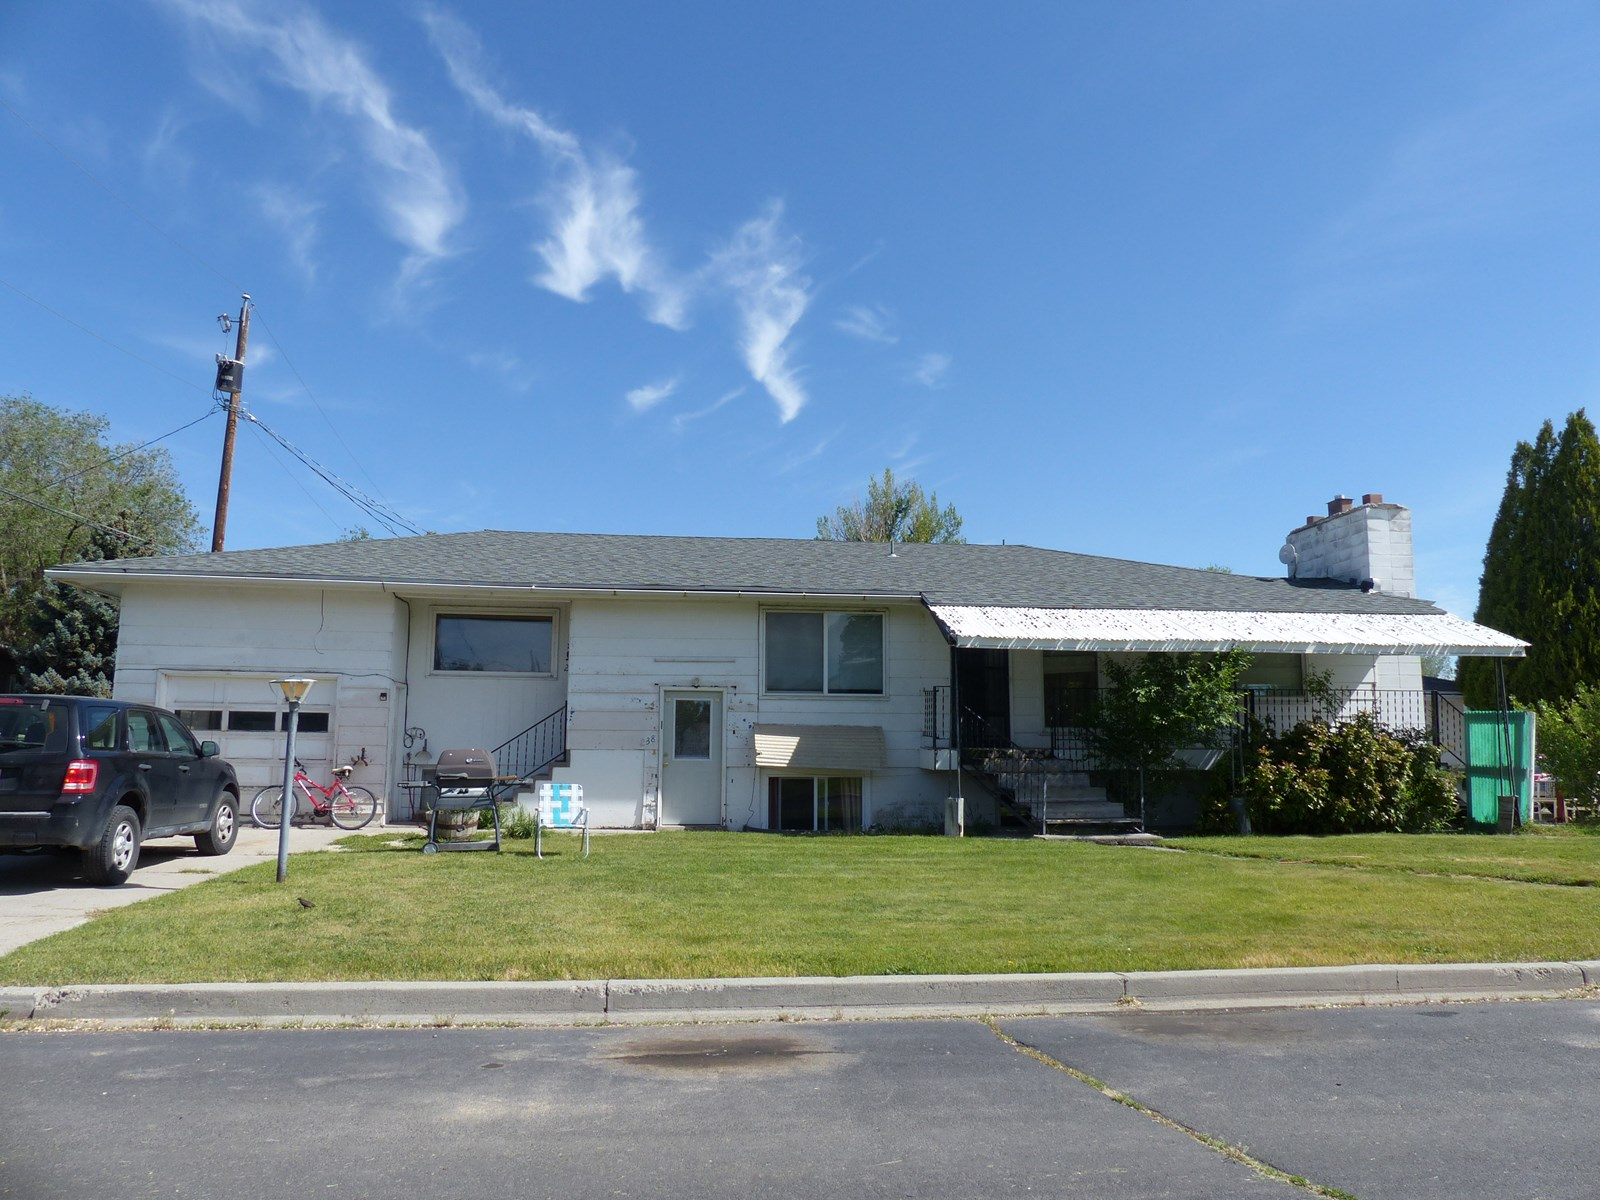 4 PLEX FOR SALE IN BURNS OREGON